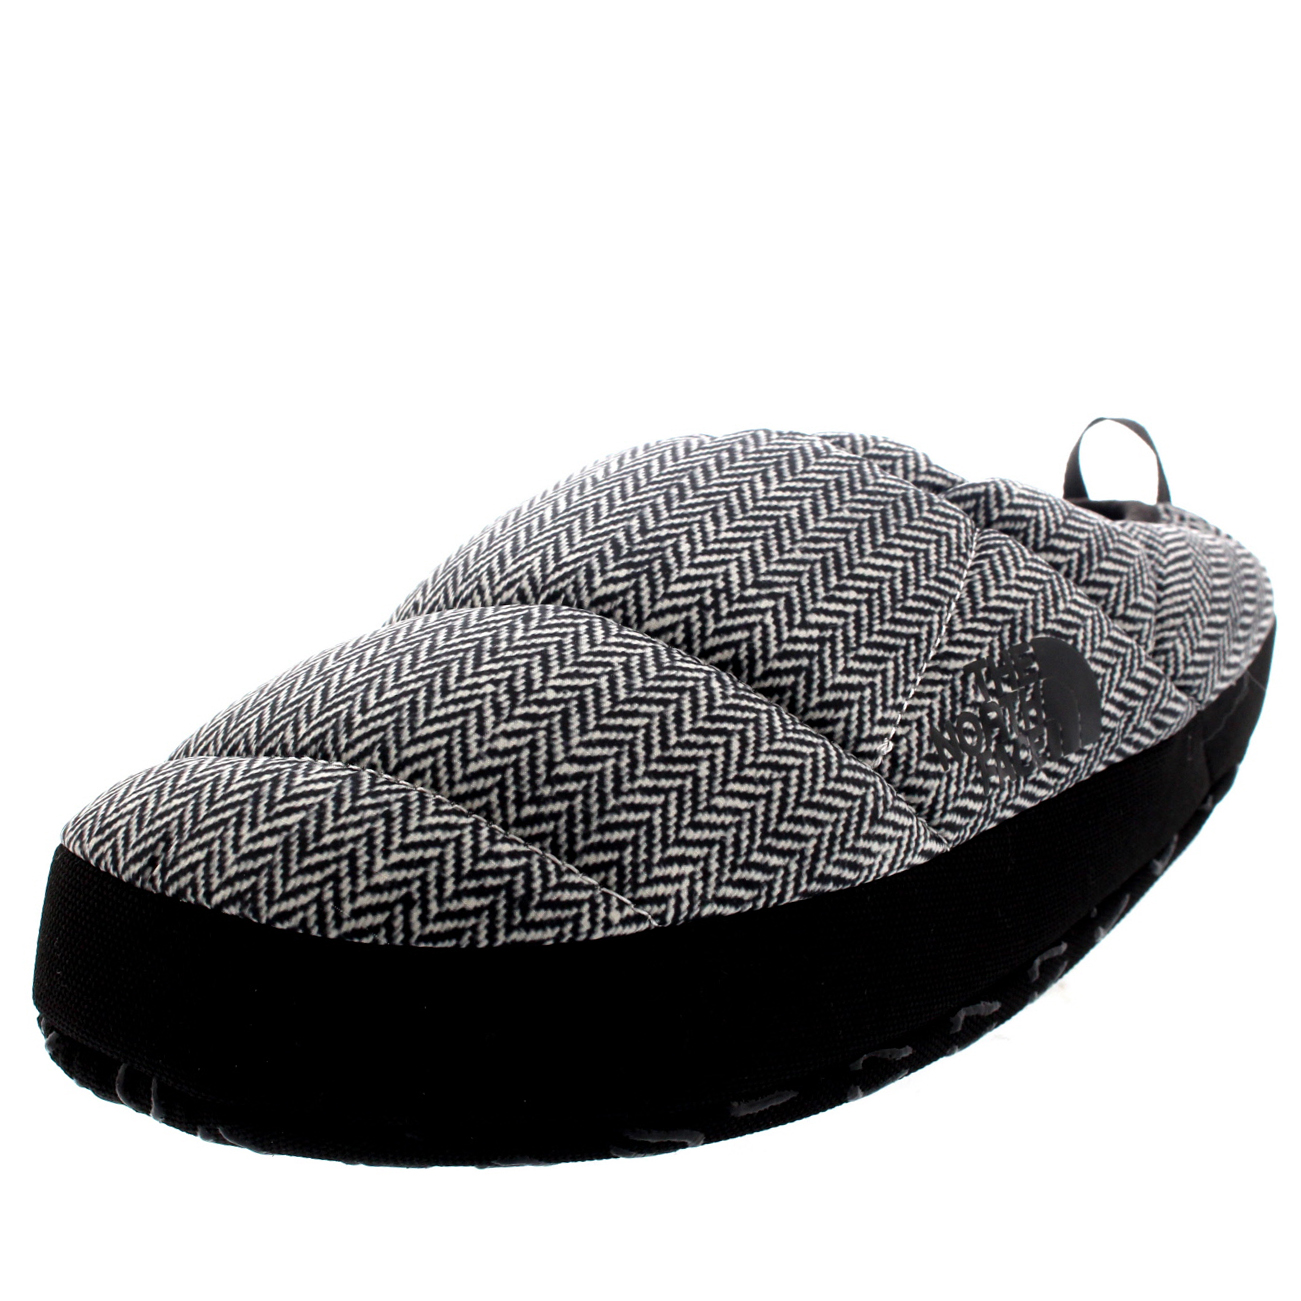 The North Face Nse Tent Mule III Slipper